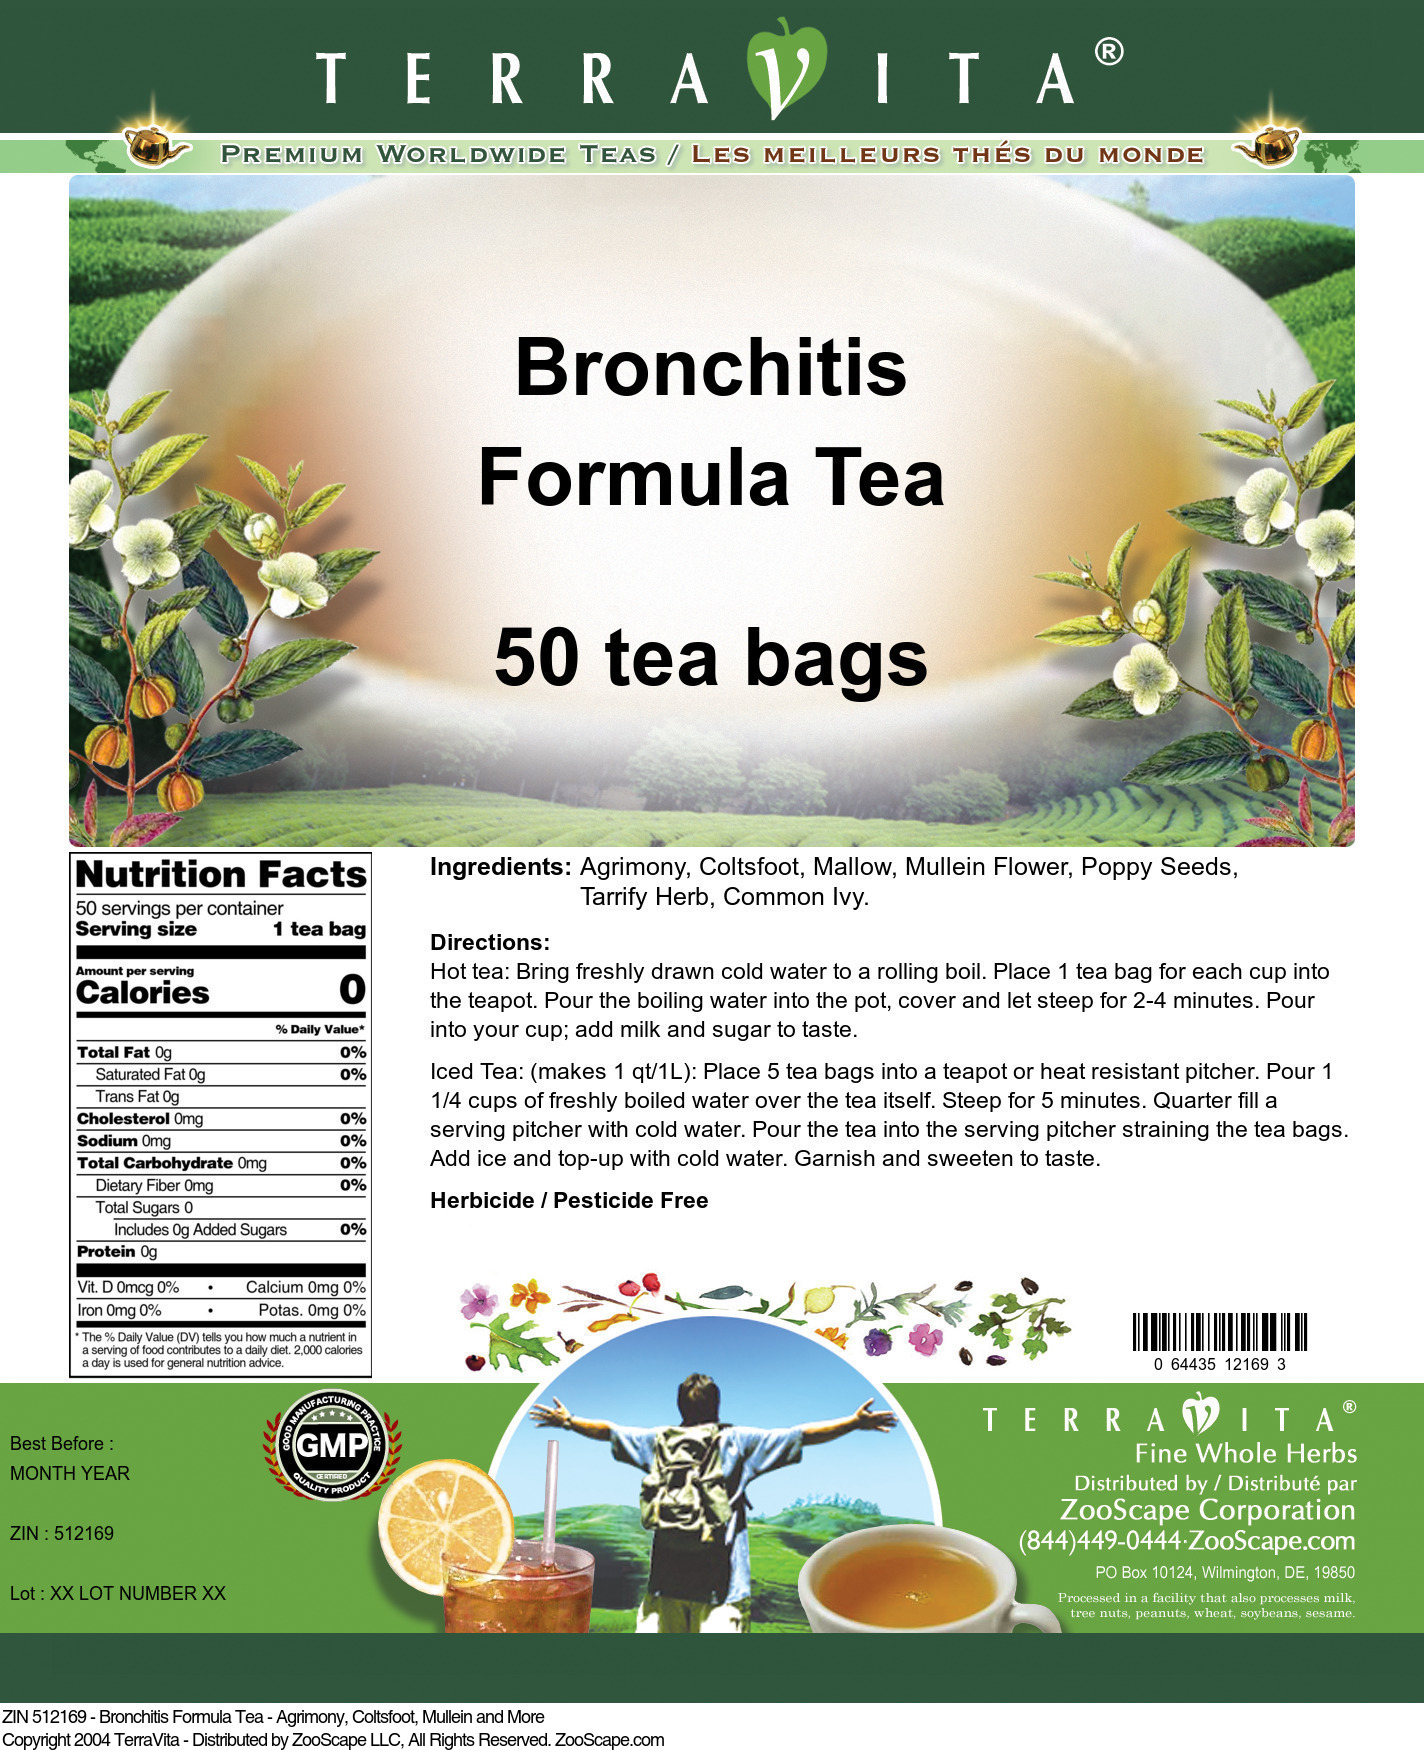 Bronchitis Formula Tea - Agrimony, Coltsfoot, Mullein and More